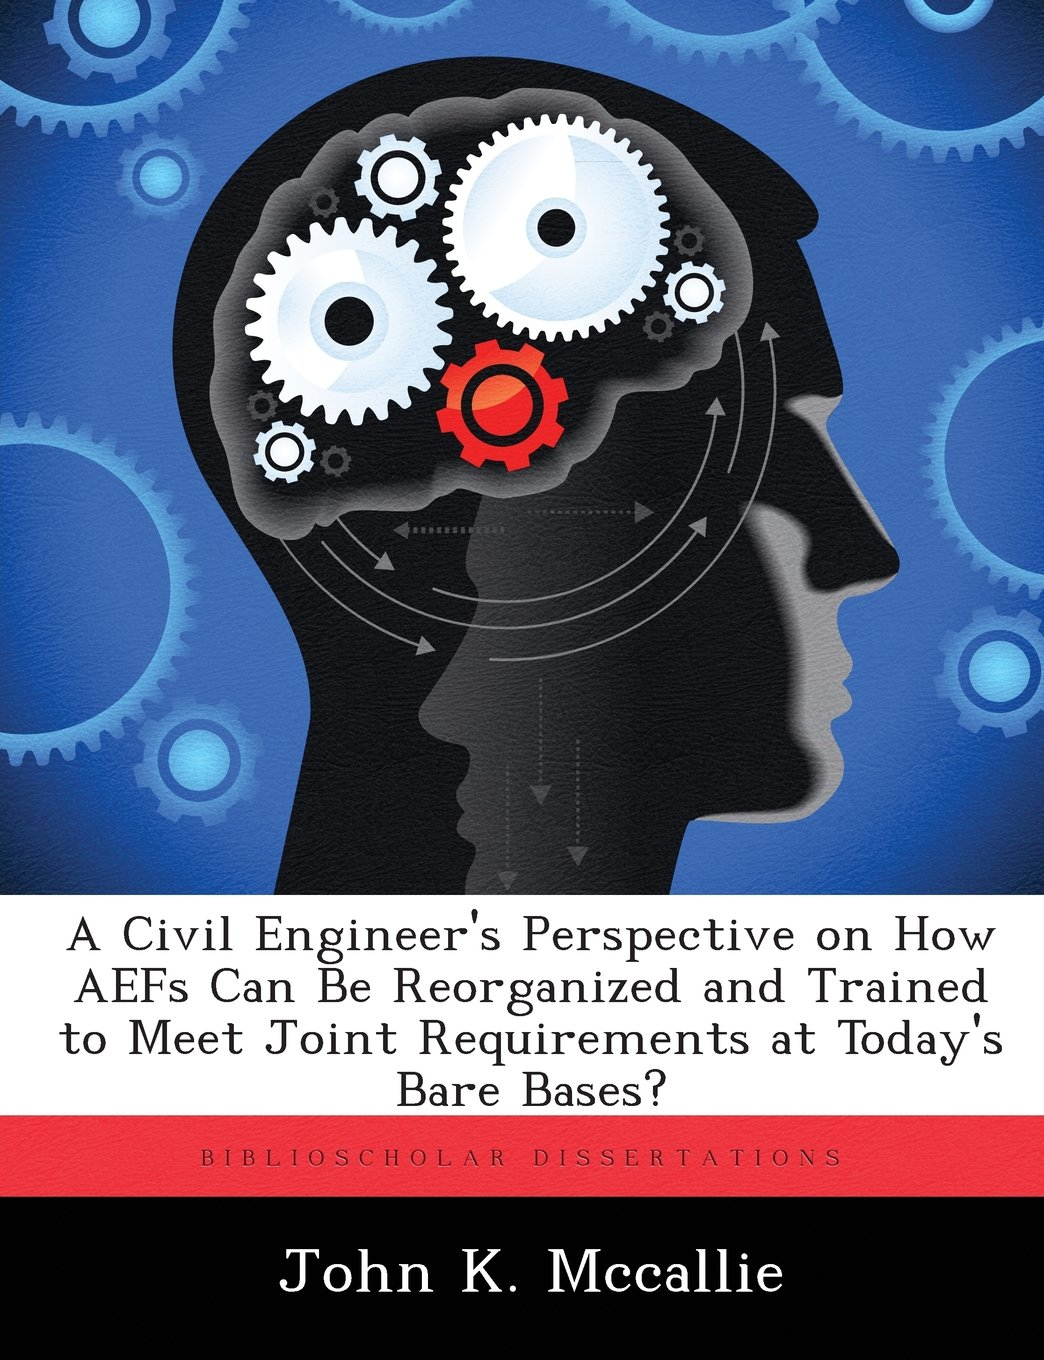 A Civil Engineer's Perspective on How AEFs Can Be Reorganized and Trained to Meet Joint Requirements at Today's Bare Bases? PDF